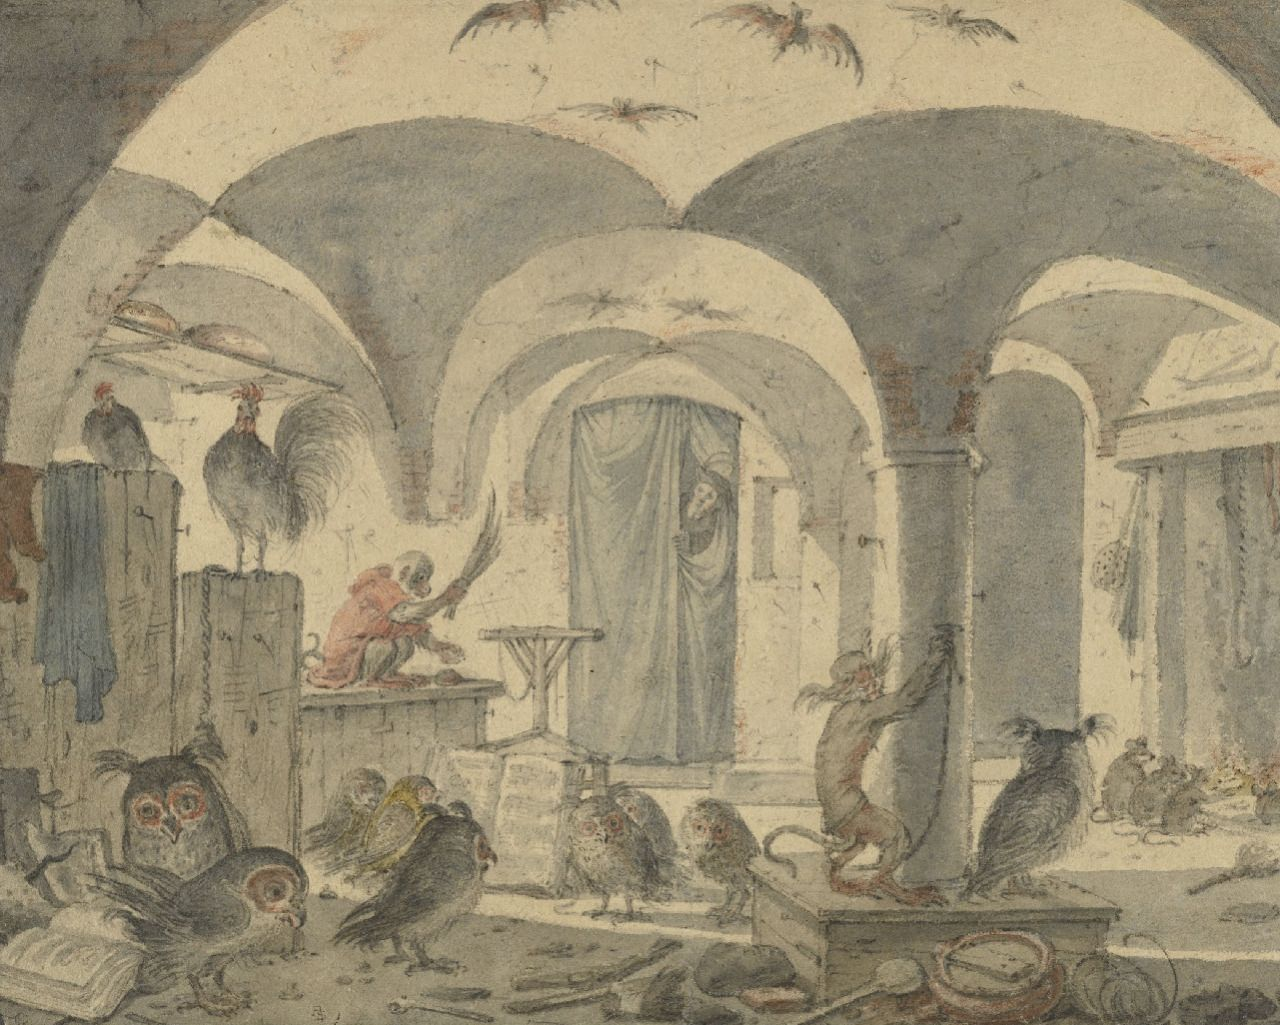 Cornelis Saftleven, An Enchanted Cellar with Animals about 1655 - 1670 /  The J. Paul Getty Museum